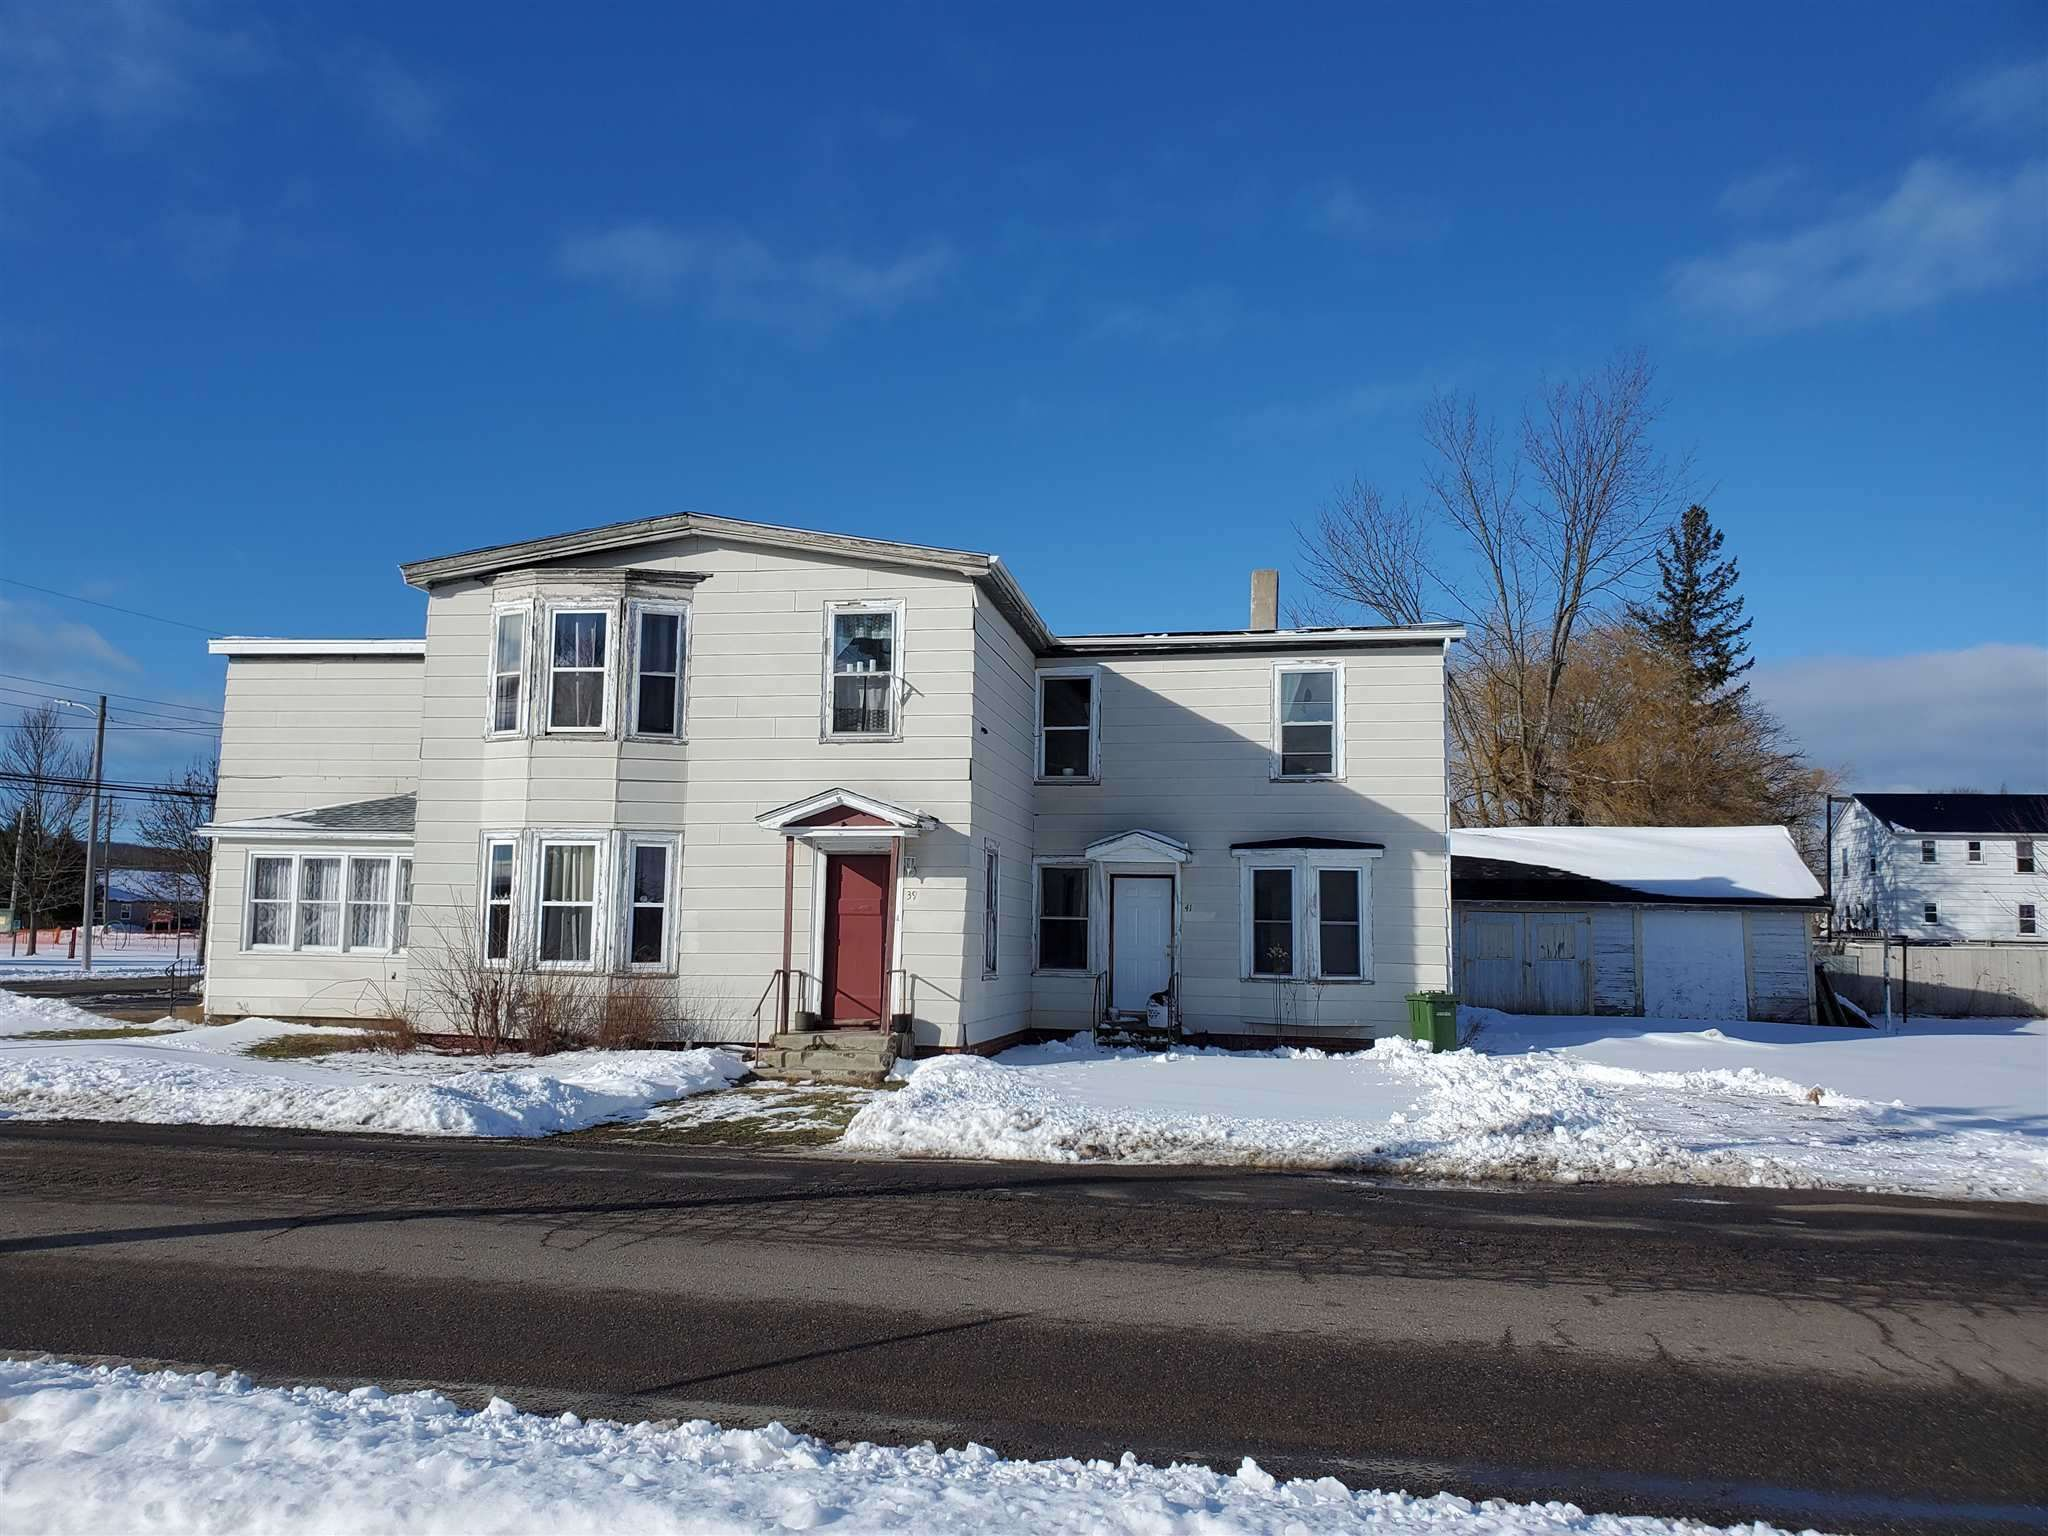 Main Photo: 32/34/36 School Street in Middleton: 400-Annapolis County Residential for sale (Annapolis Valley)  : MLS®# 202103516